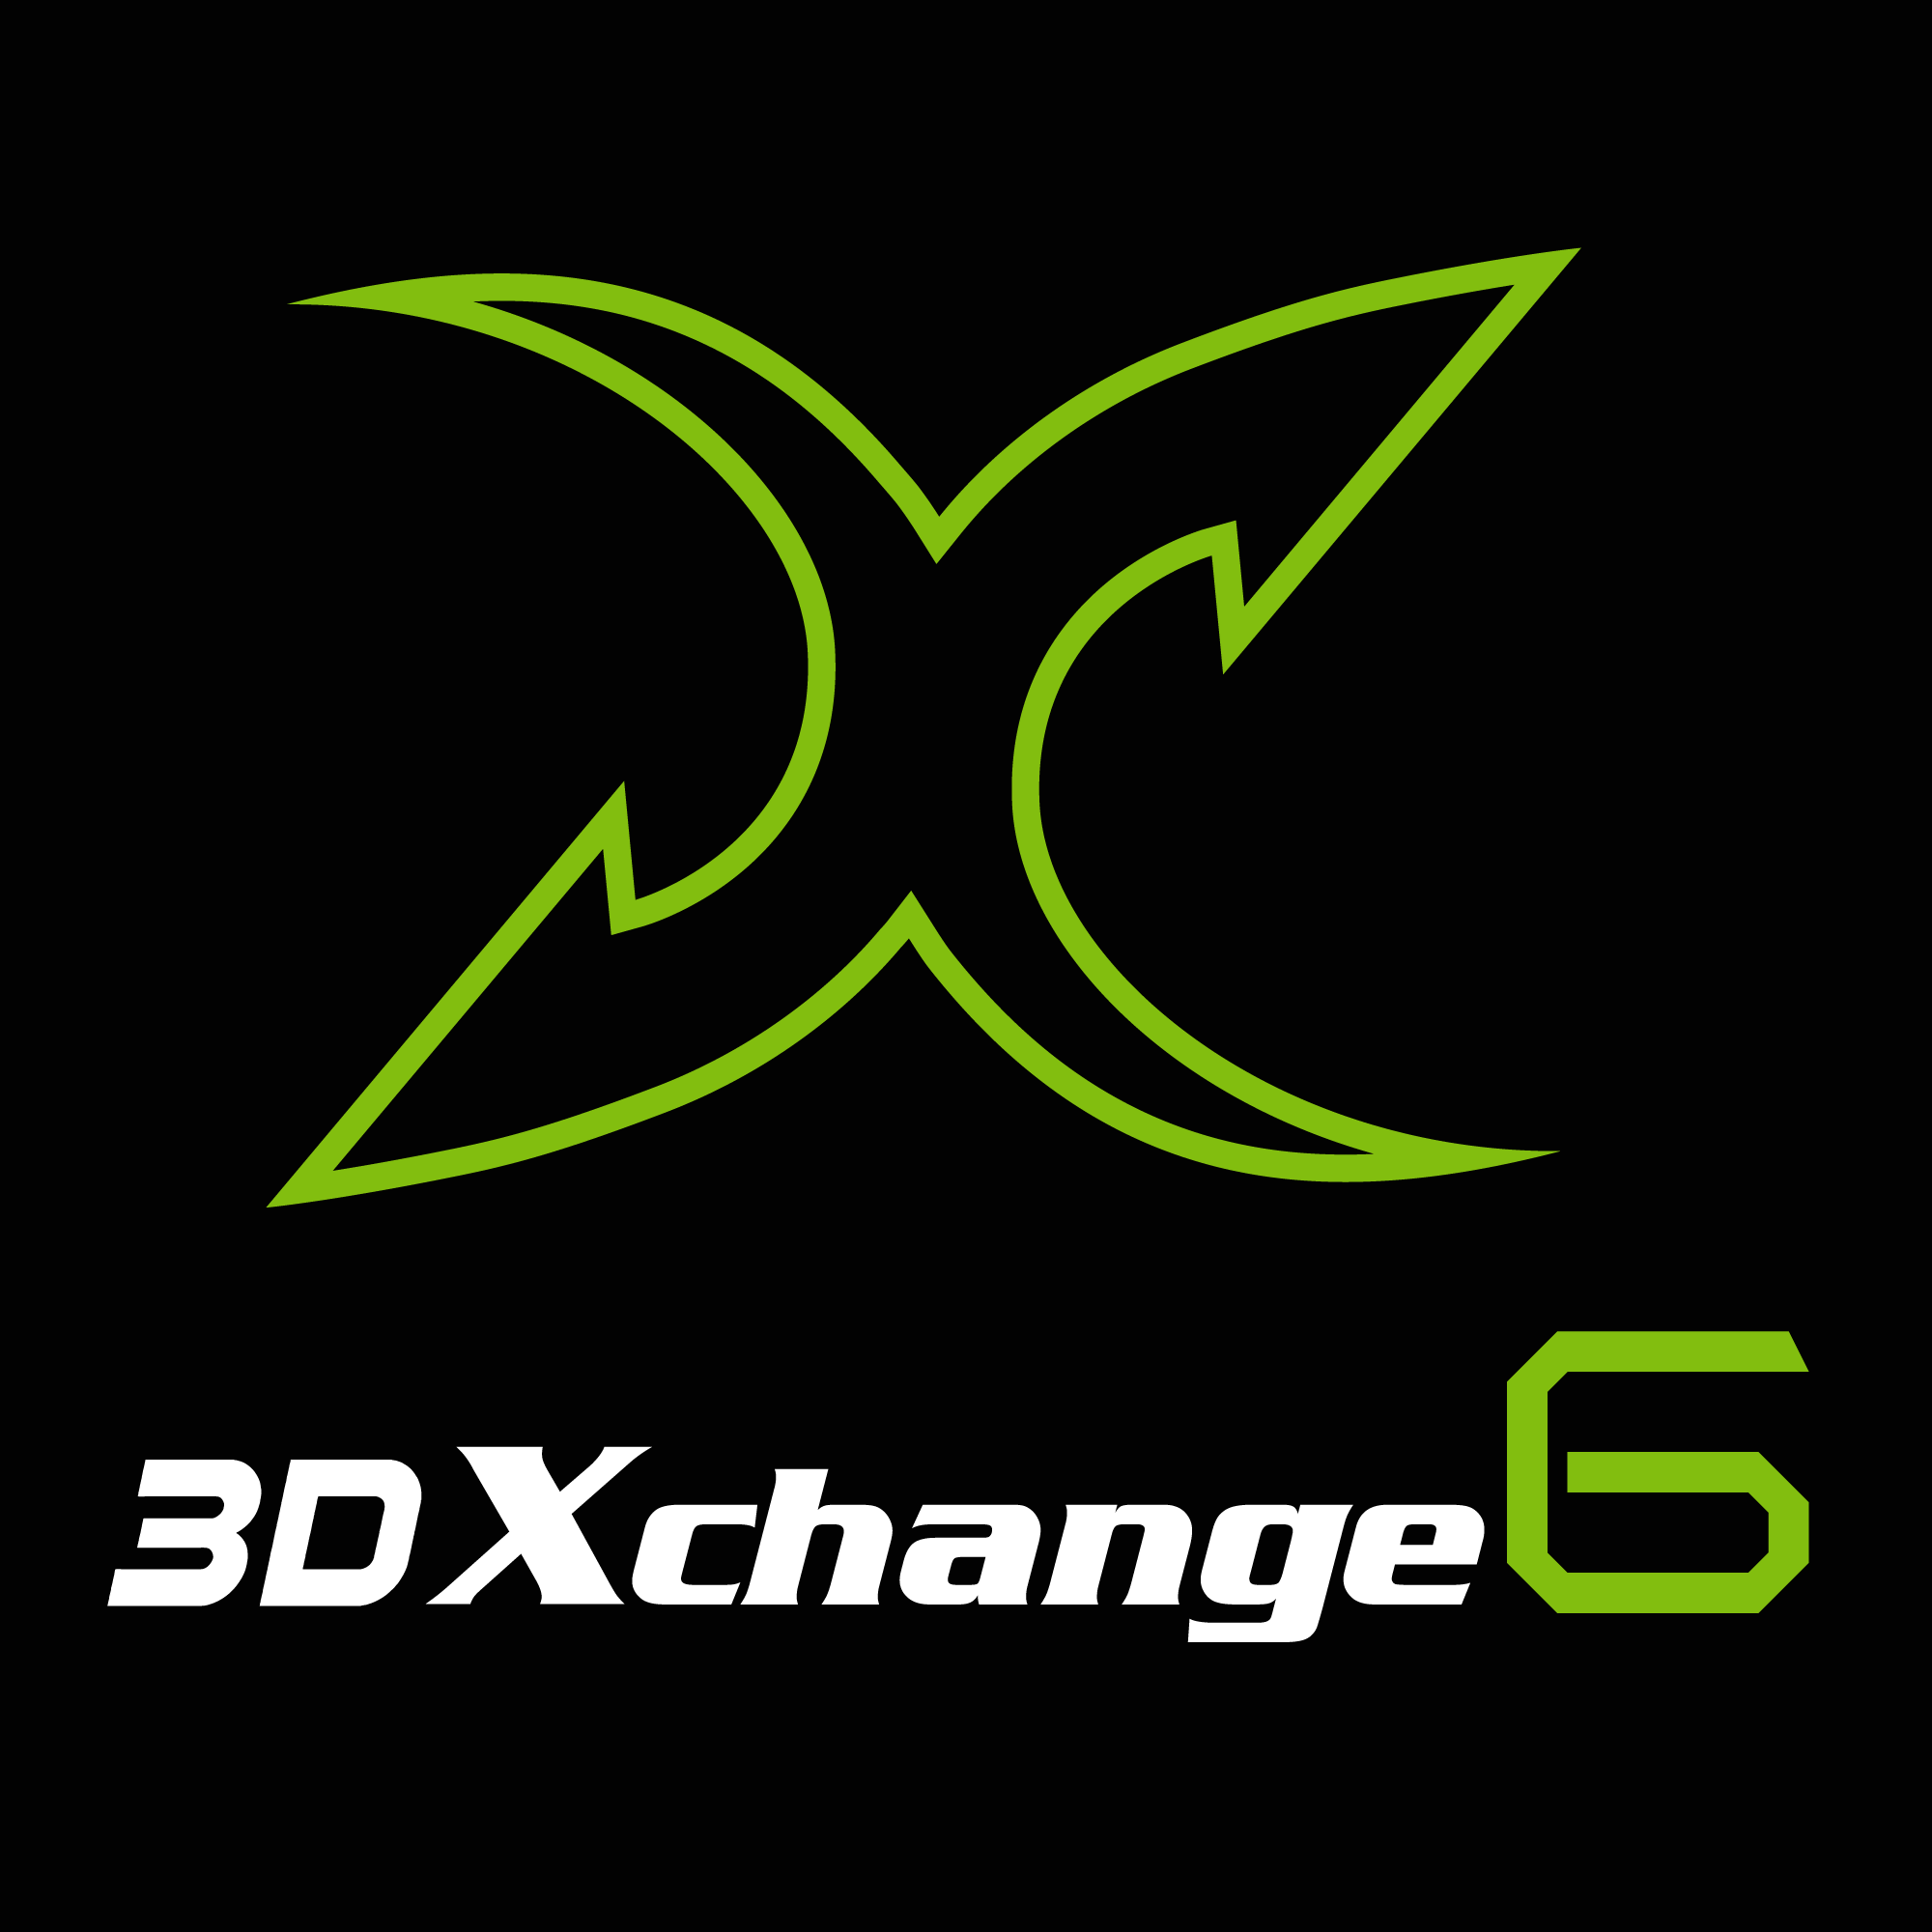 3DXchange-6-icon-logo-black-reallusion